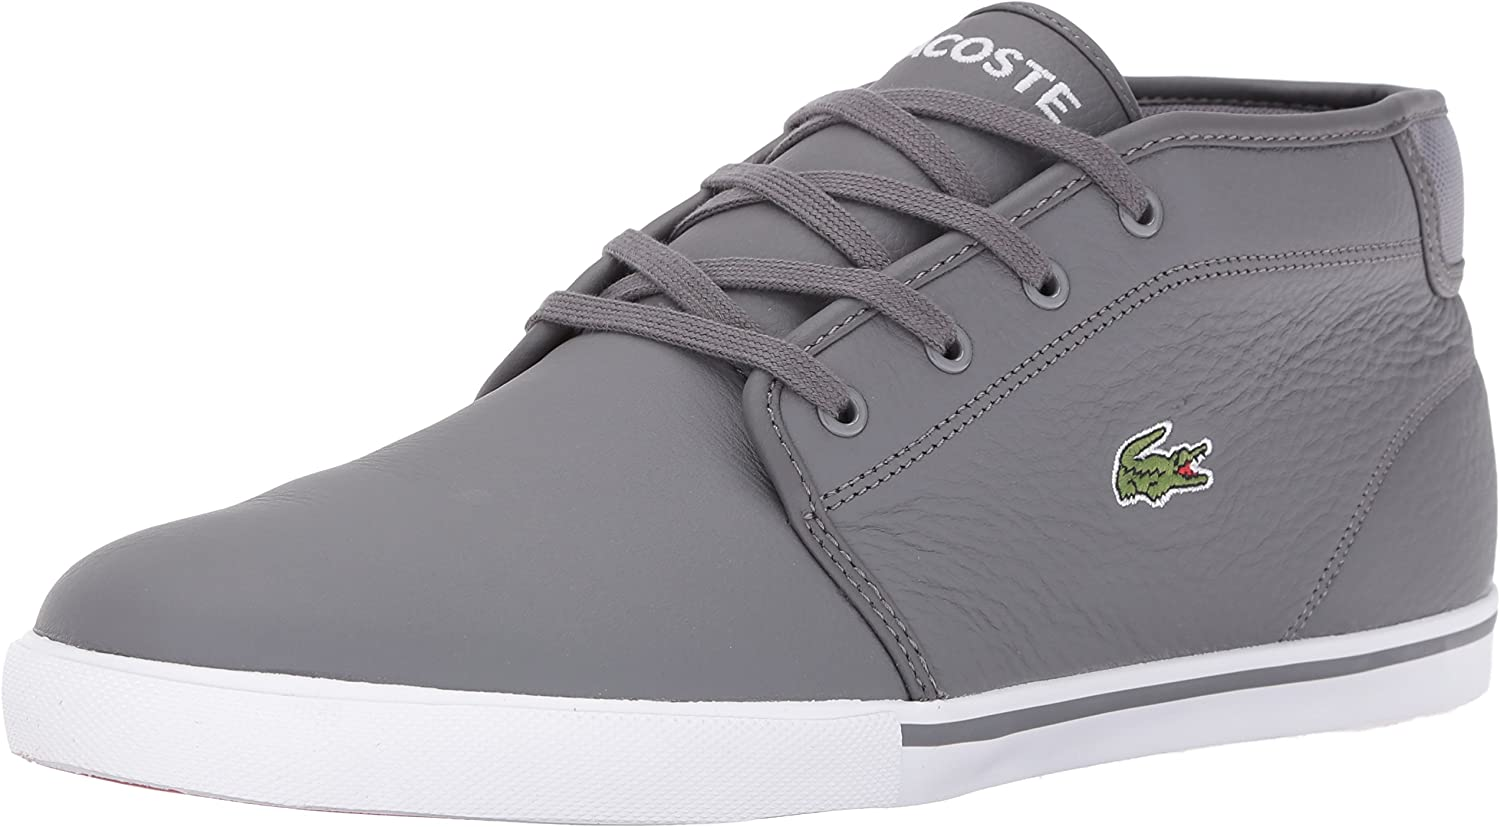 Lacoste Mens Ampthill G416 1 Casual Boot Fashion Sneaker